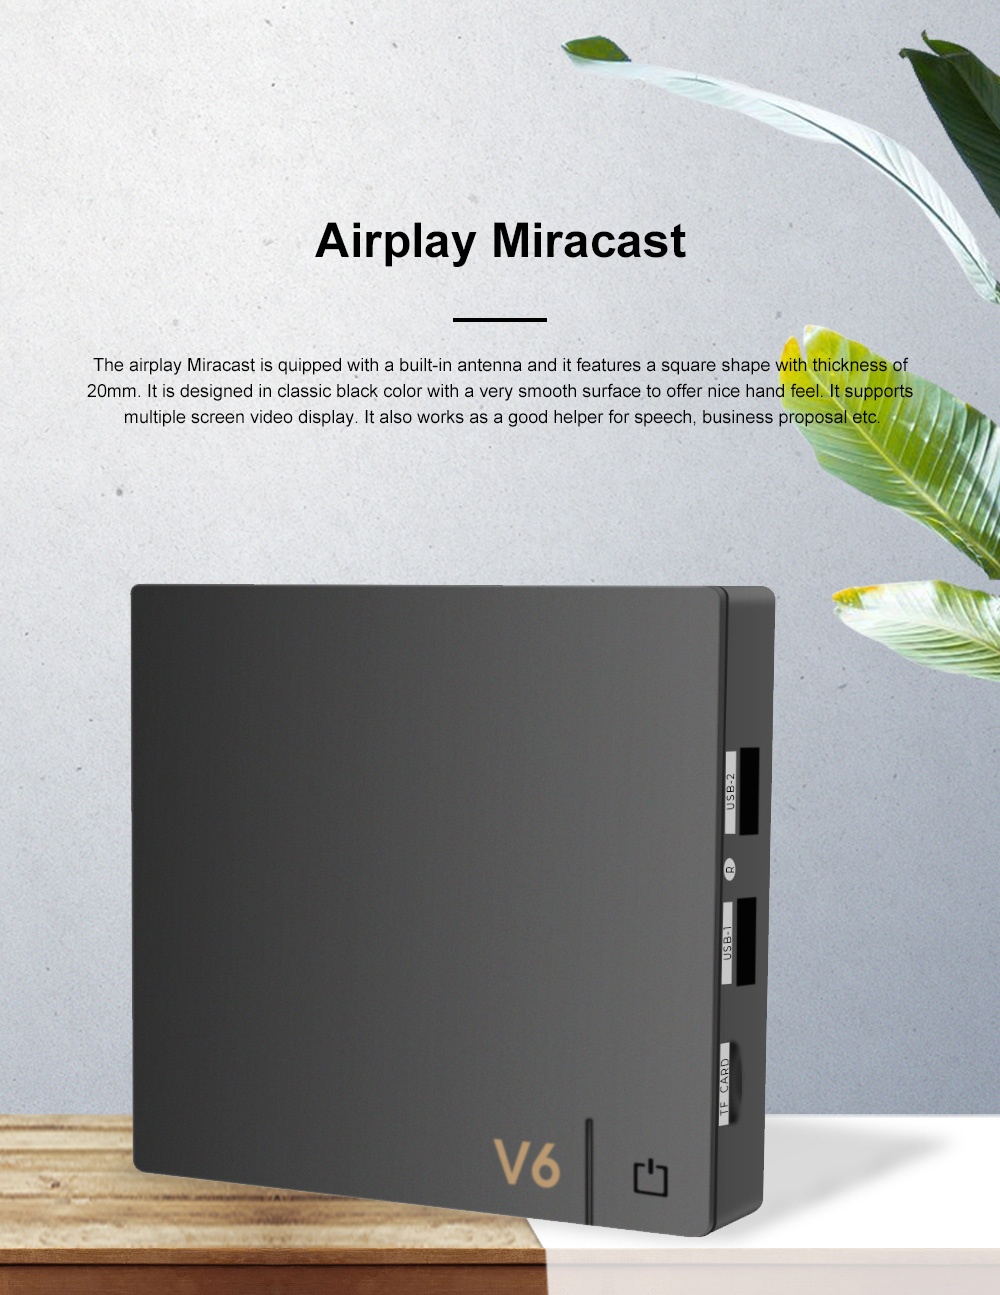 V6 4K Airplay Miracast HD Projection Converter for Indoor Mirroring Display Multifunctional Portable Screen Converter 0